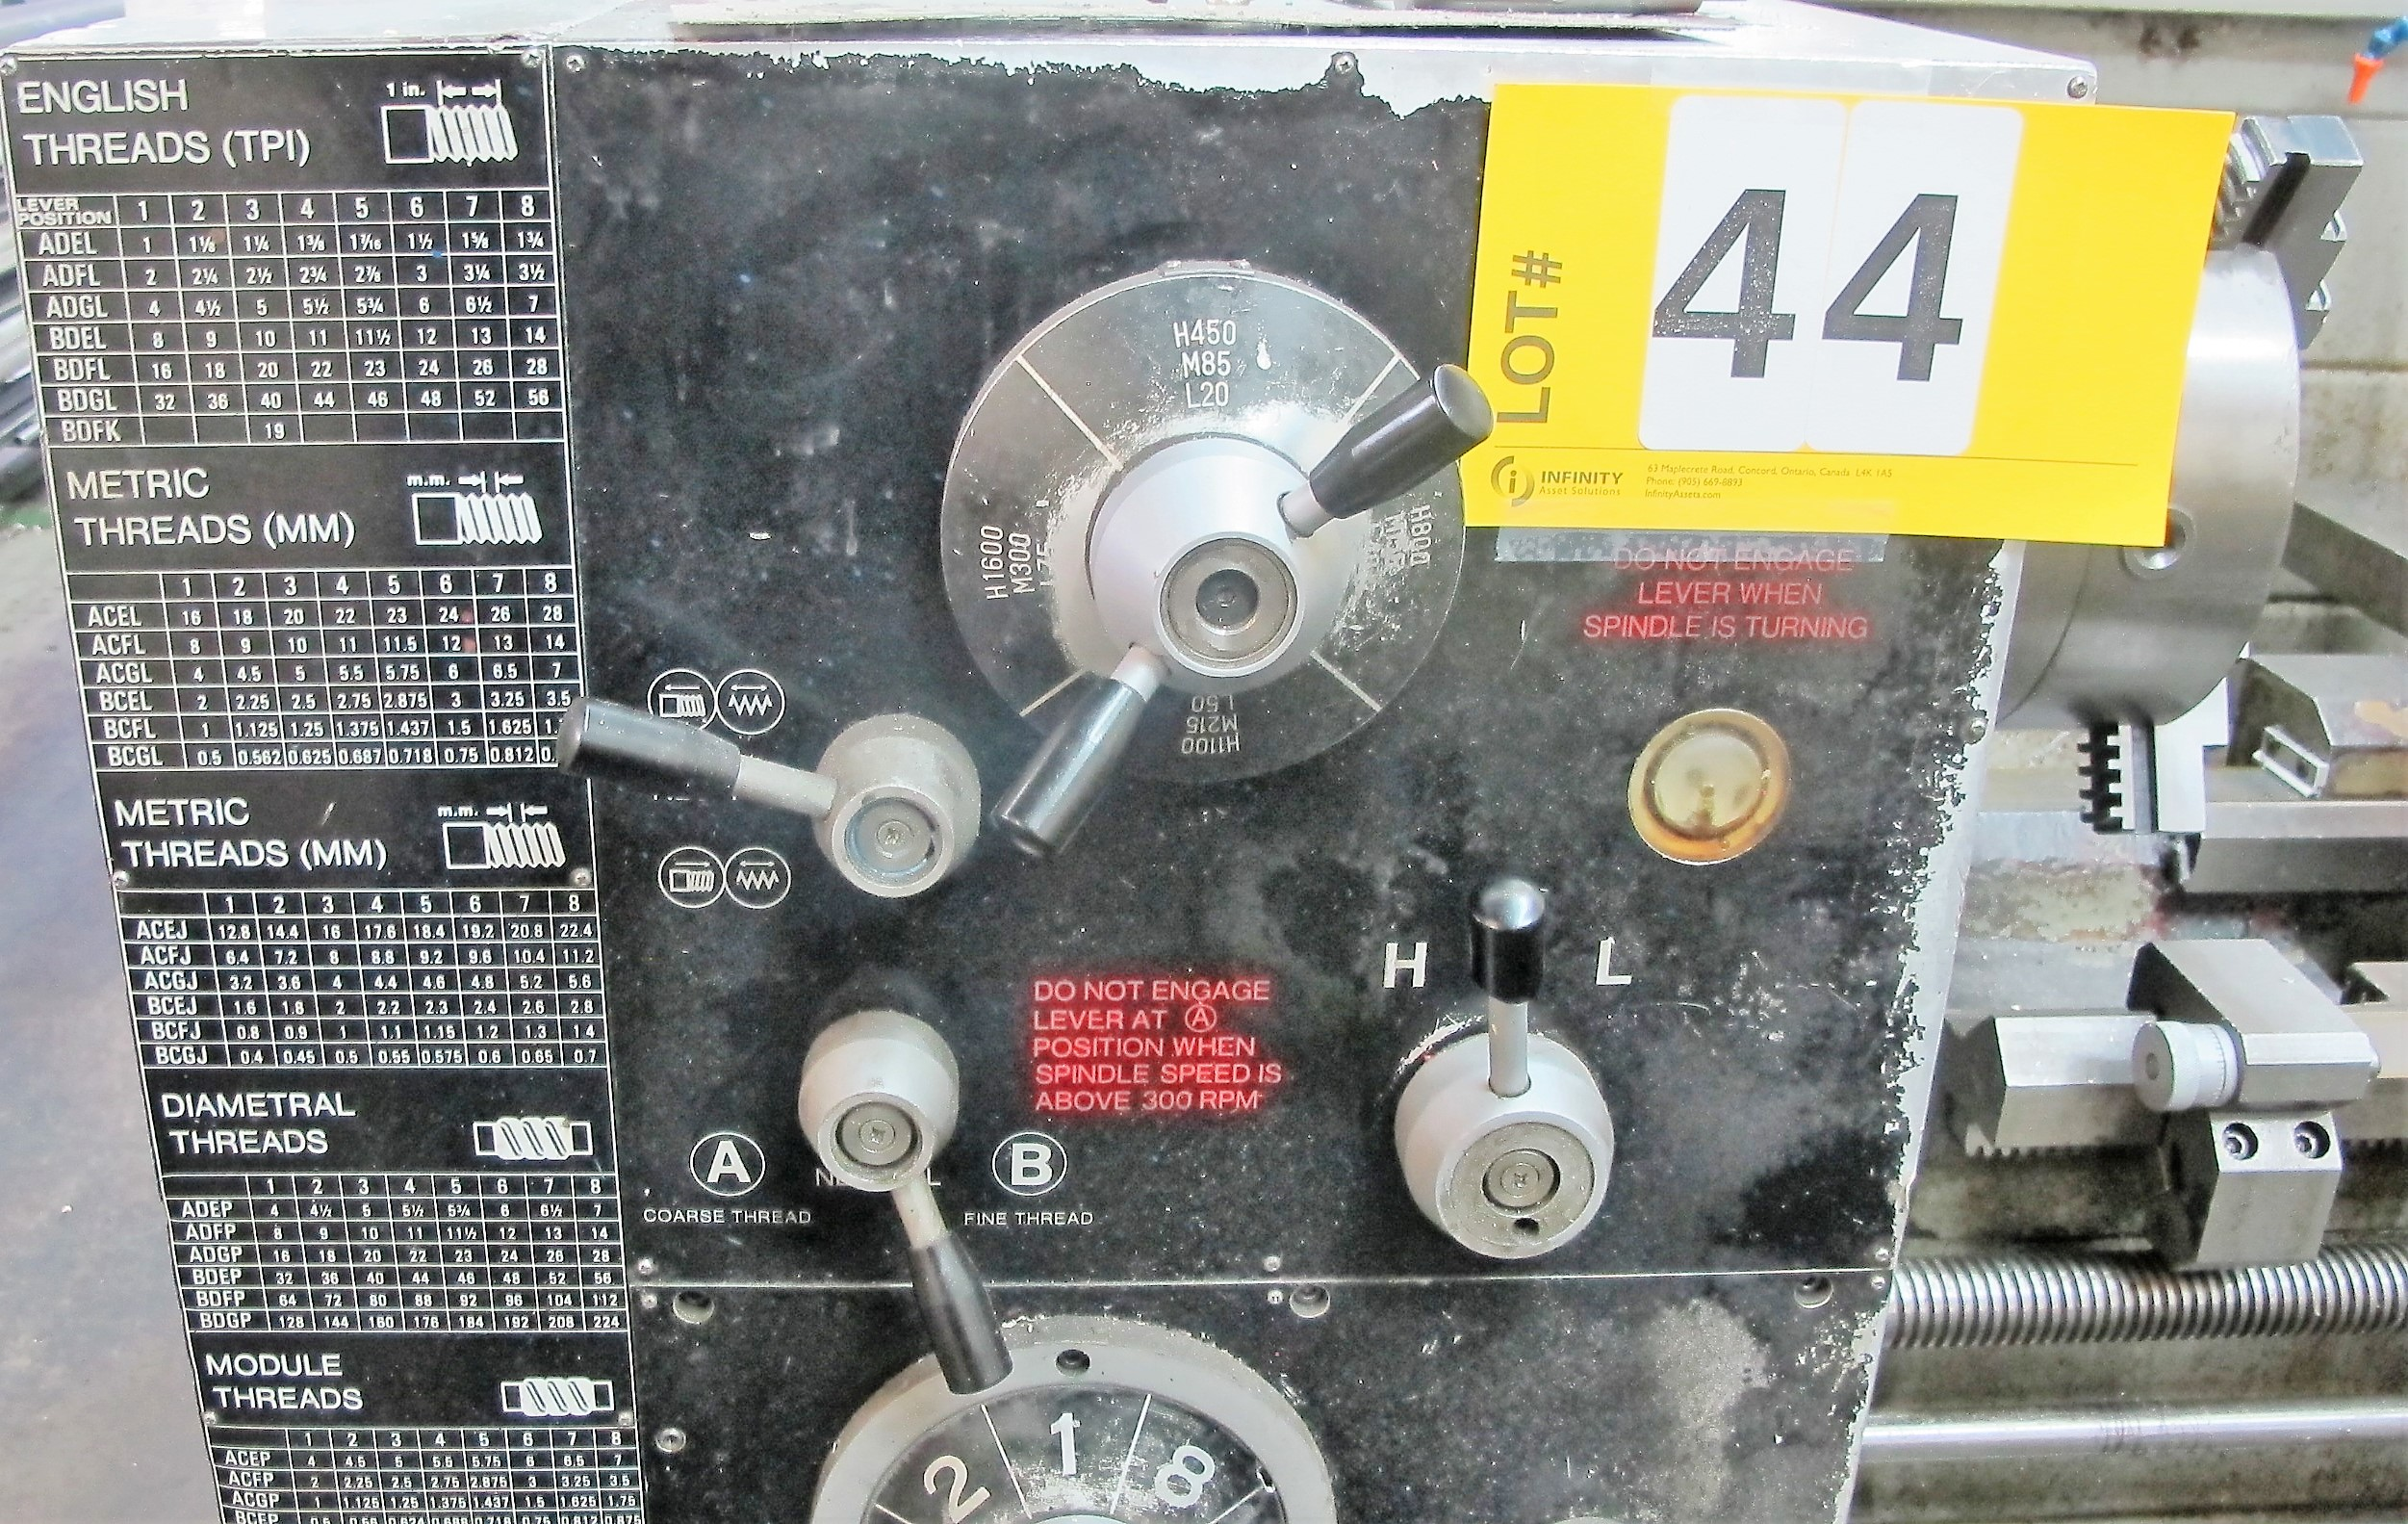 """Lot 44 - ACRA TURN 1764T, 3 PHASE LATHE W/64"""" X 17"""" BED, 10"""" 3 JAW CHUCK, 18"""" SWING X 64"""" BETWEEN CENTERS,"""